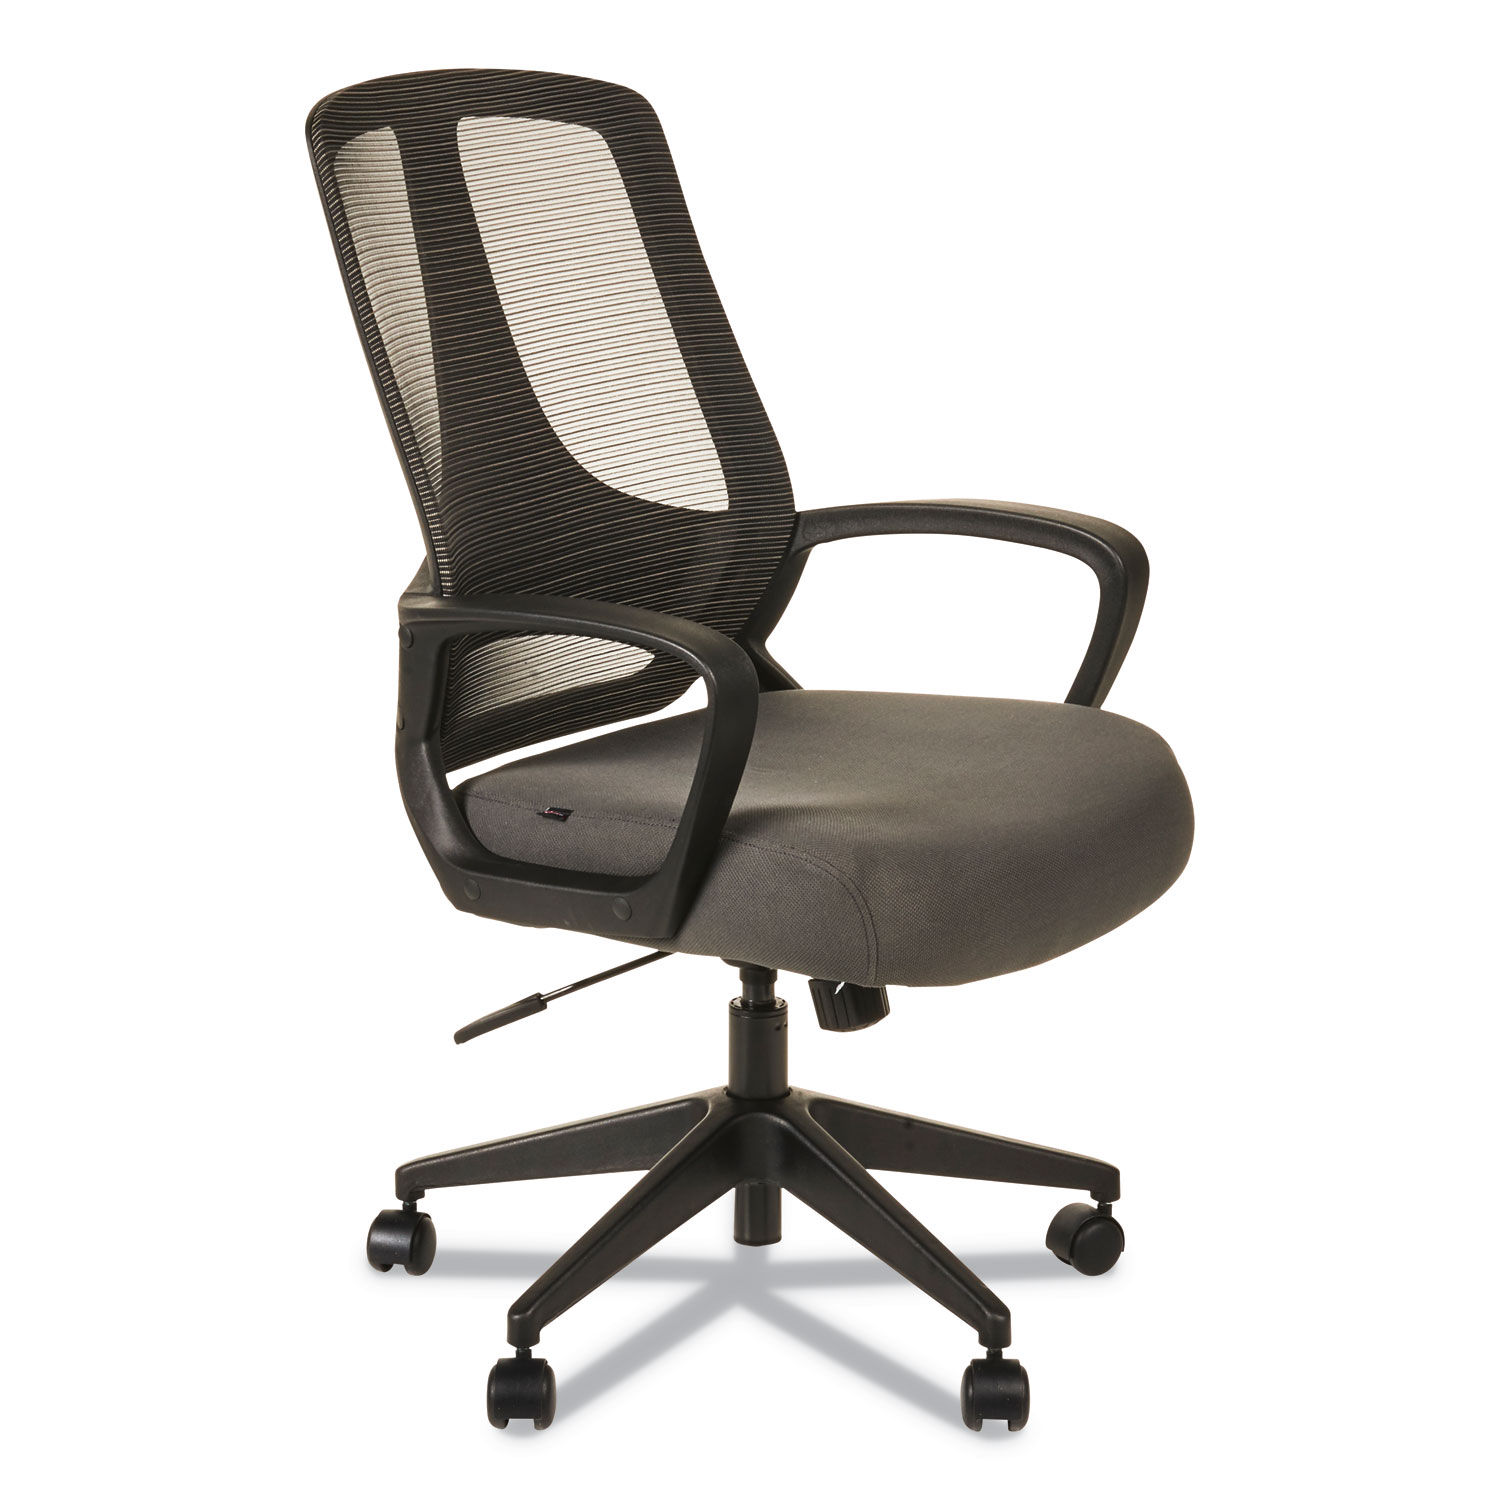 Alera Mb Series Mesh Mid Back Office Chair Supports Up To 275 Lbs Gray Seat Black Back Black Base